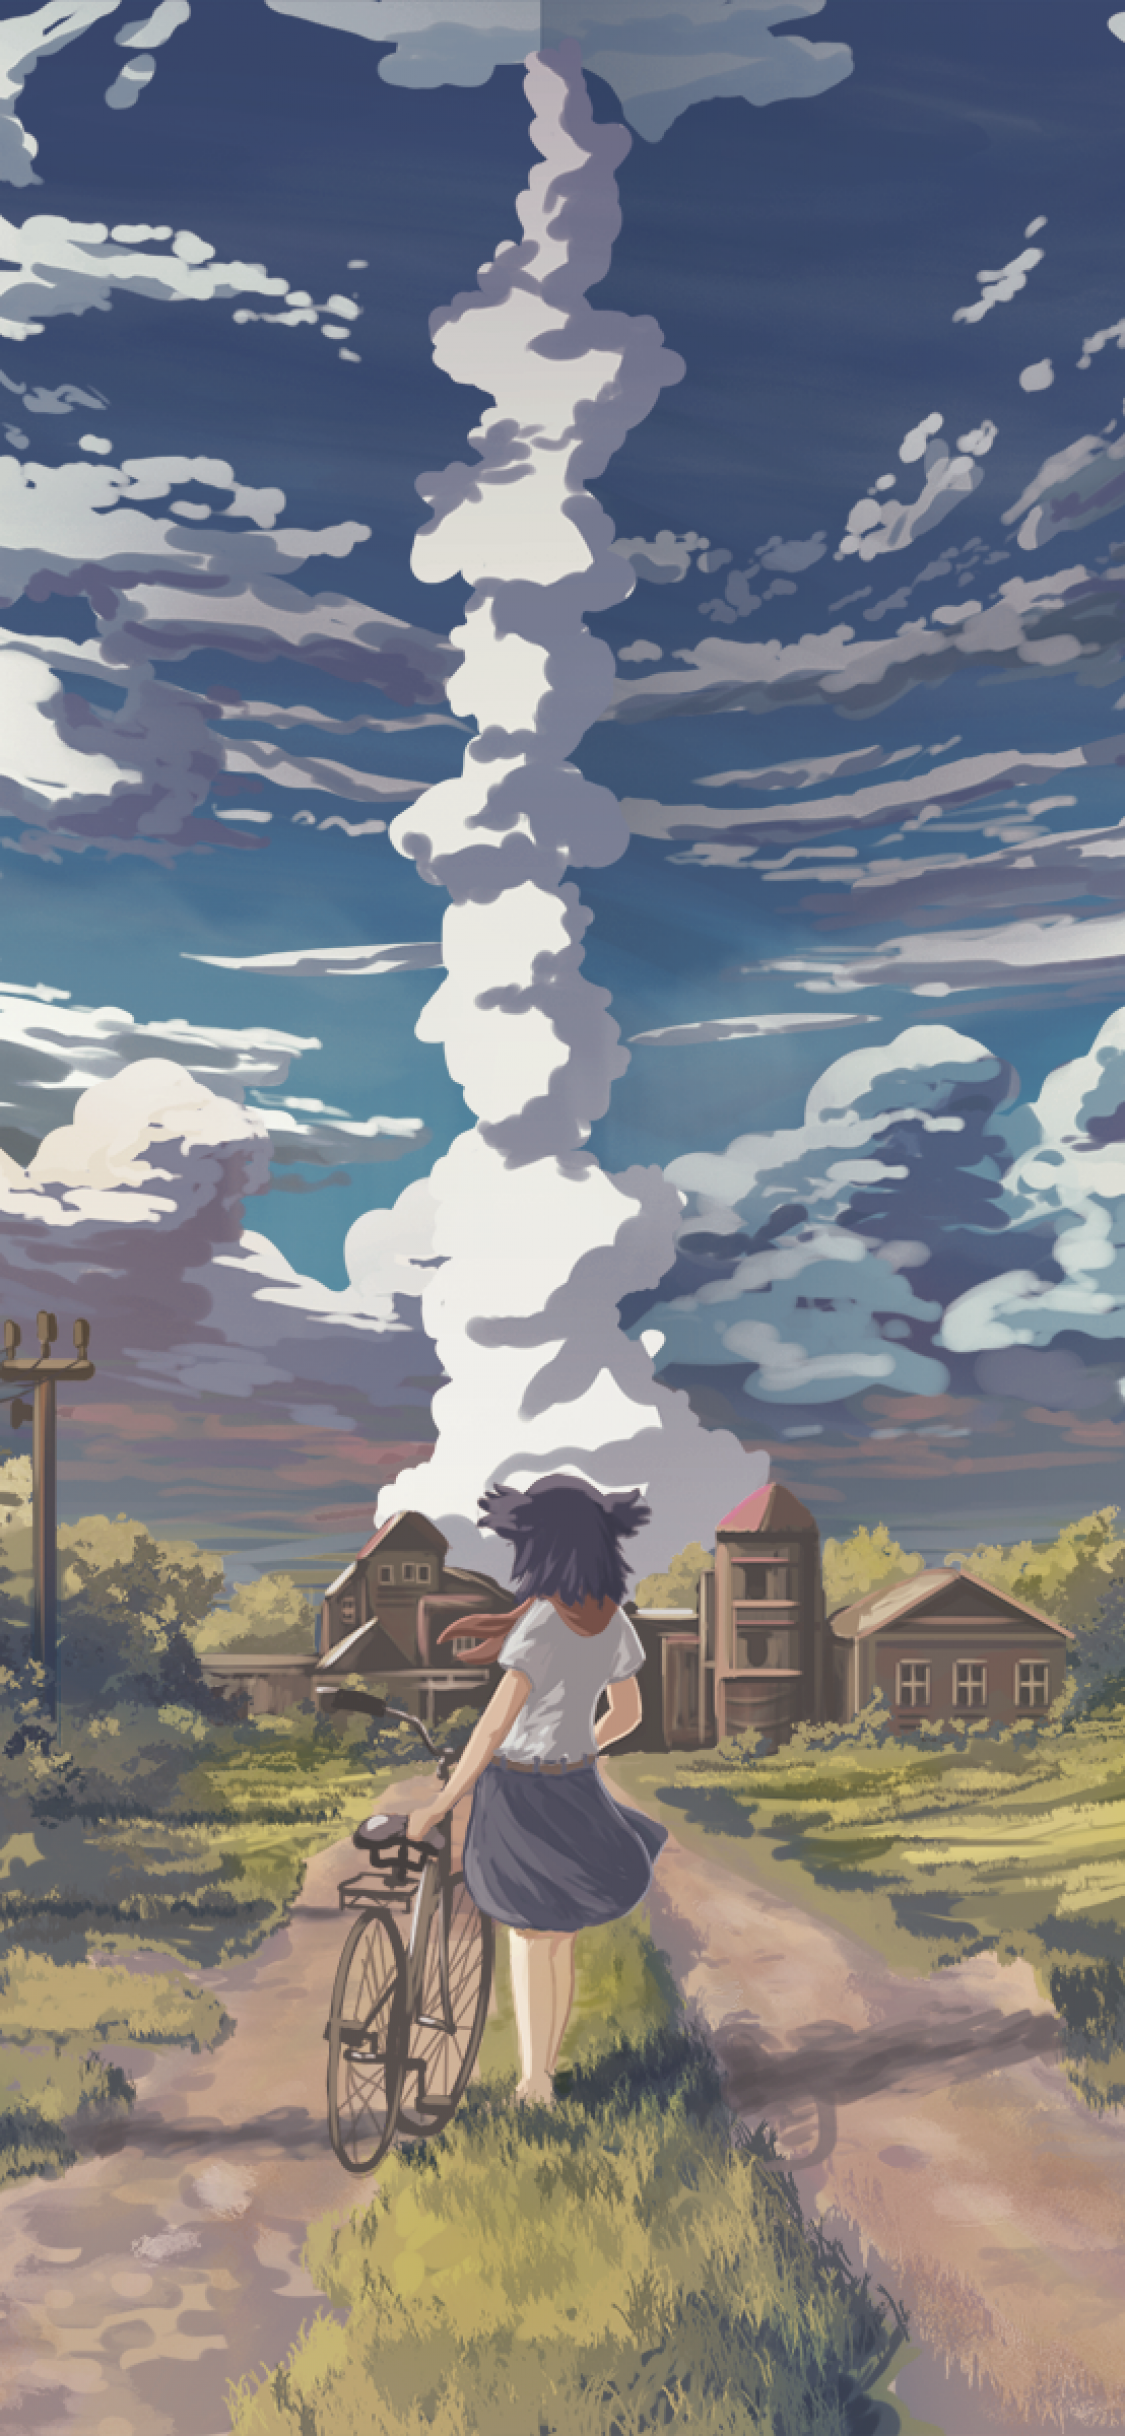 Anime Scenery iPhone X Wallpapers - Wallpaper Cave